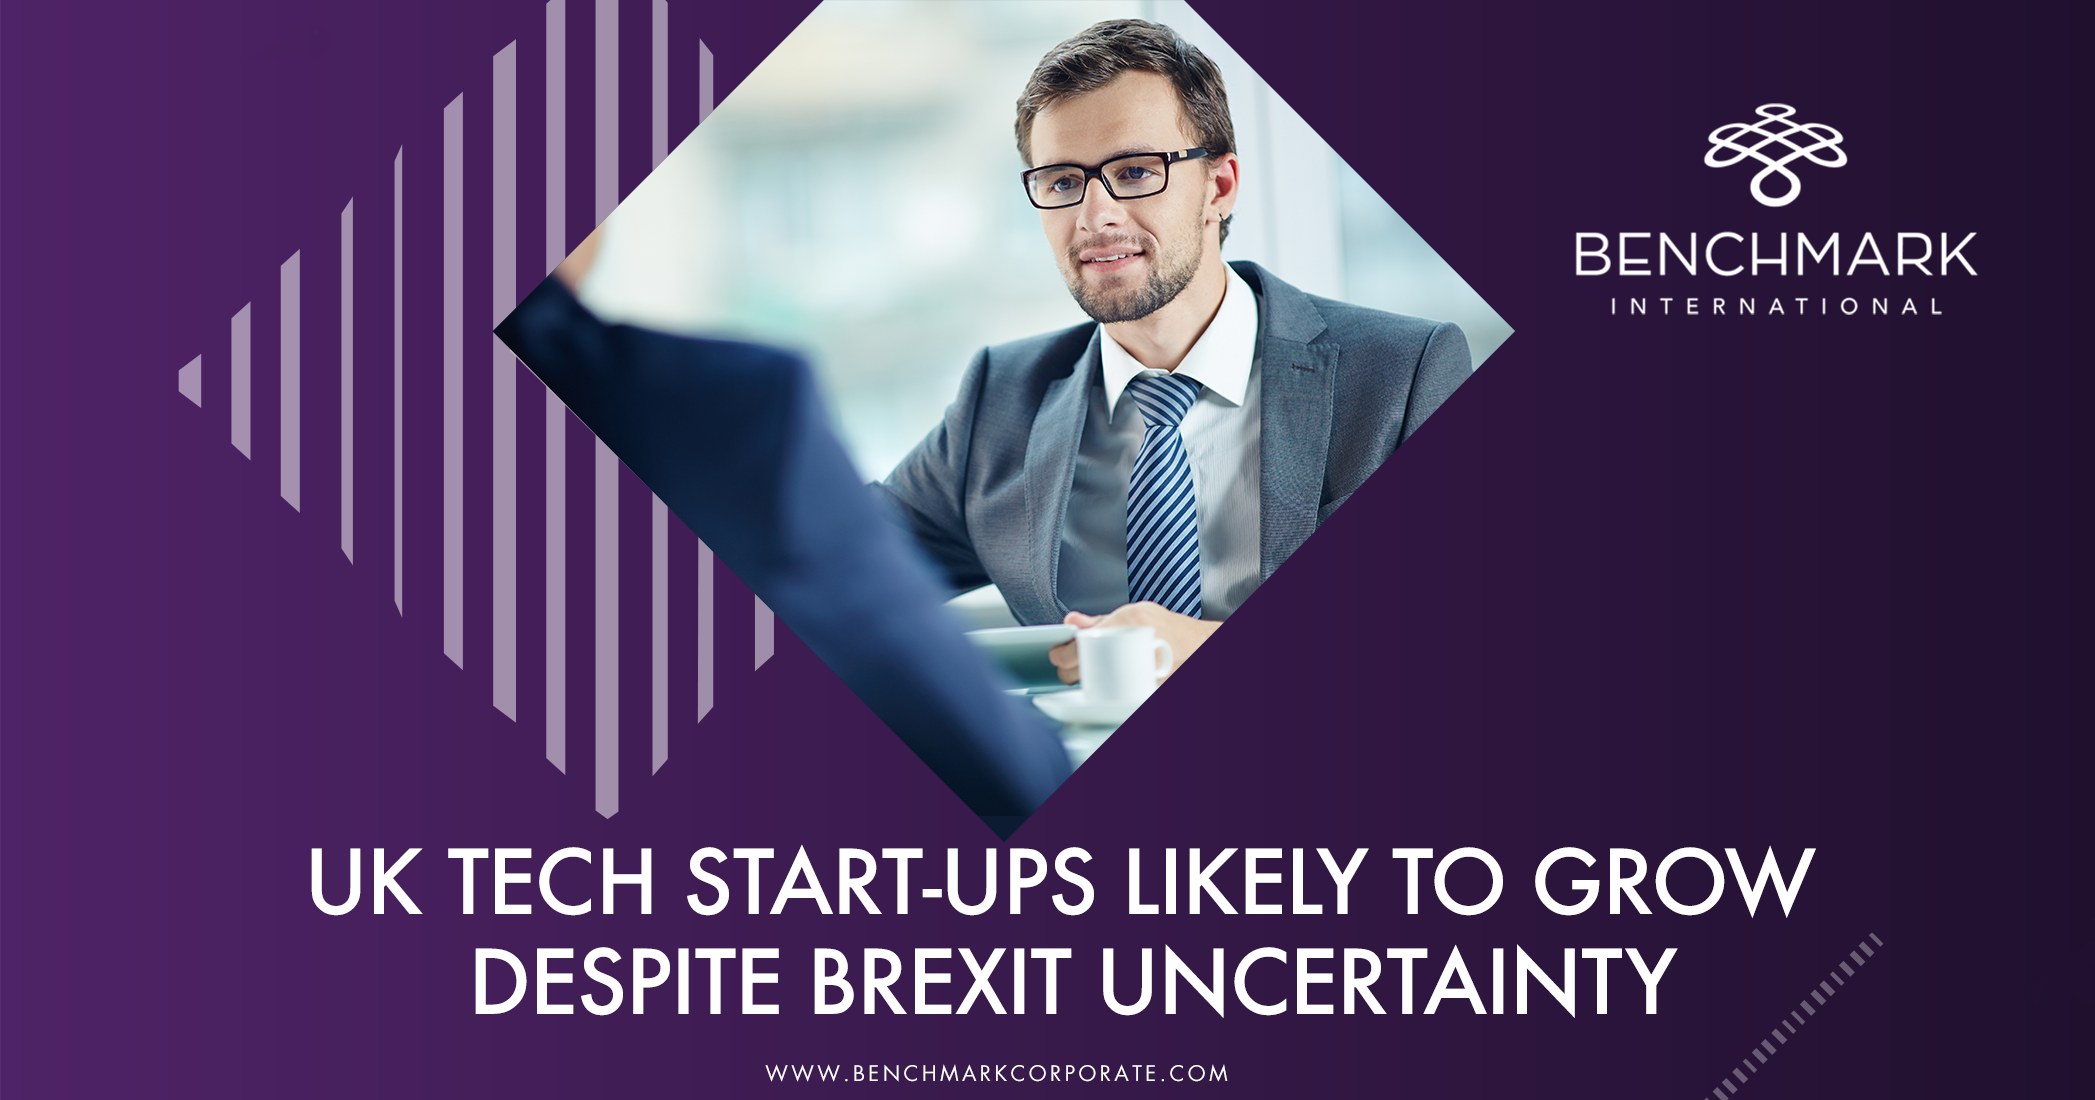 UK Tech Start-Ups Likely to Grow Despite Brexit Uncertainty